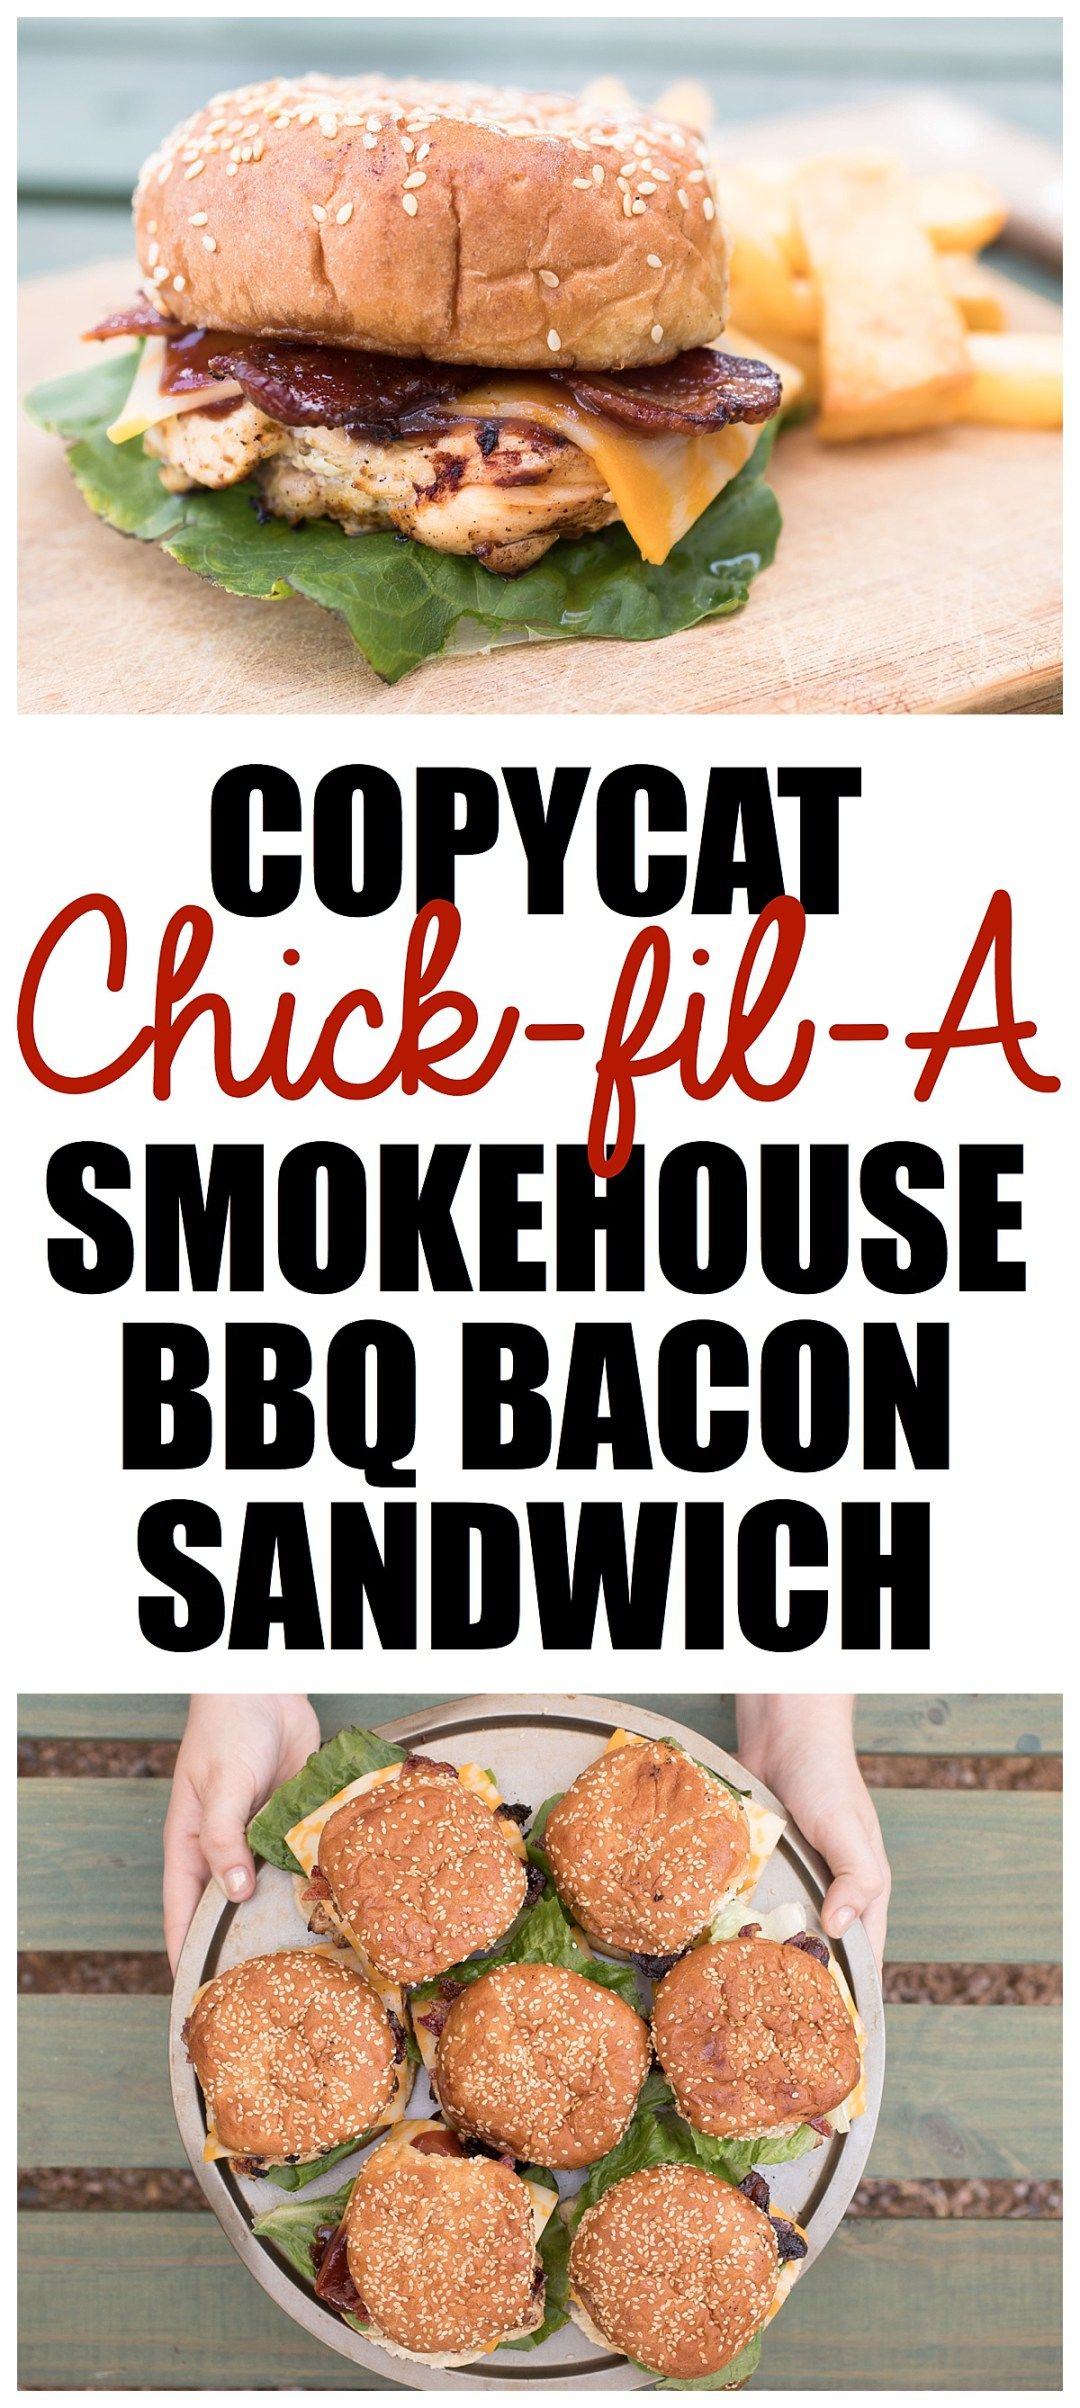 Copycat Chick Fil A Grilled Chicken Smokehouse Bbq Bacon Sandwich